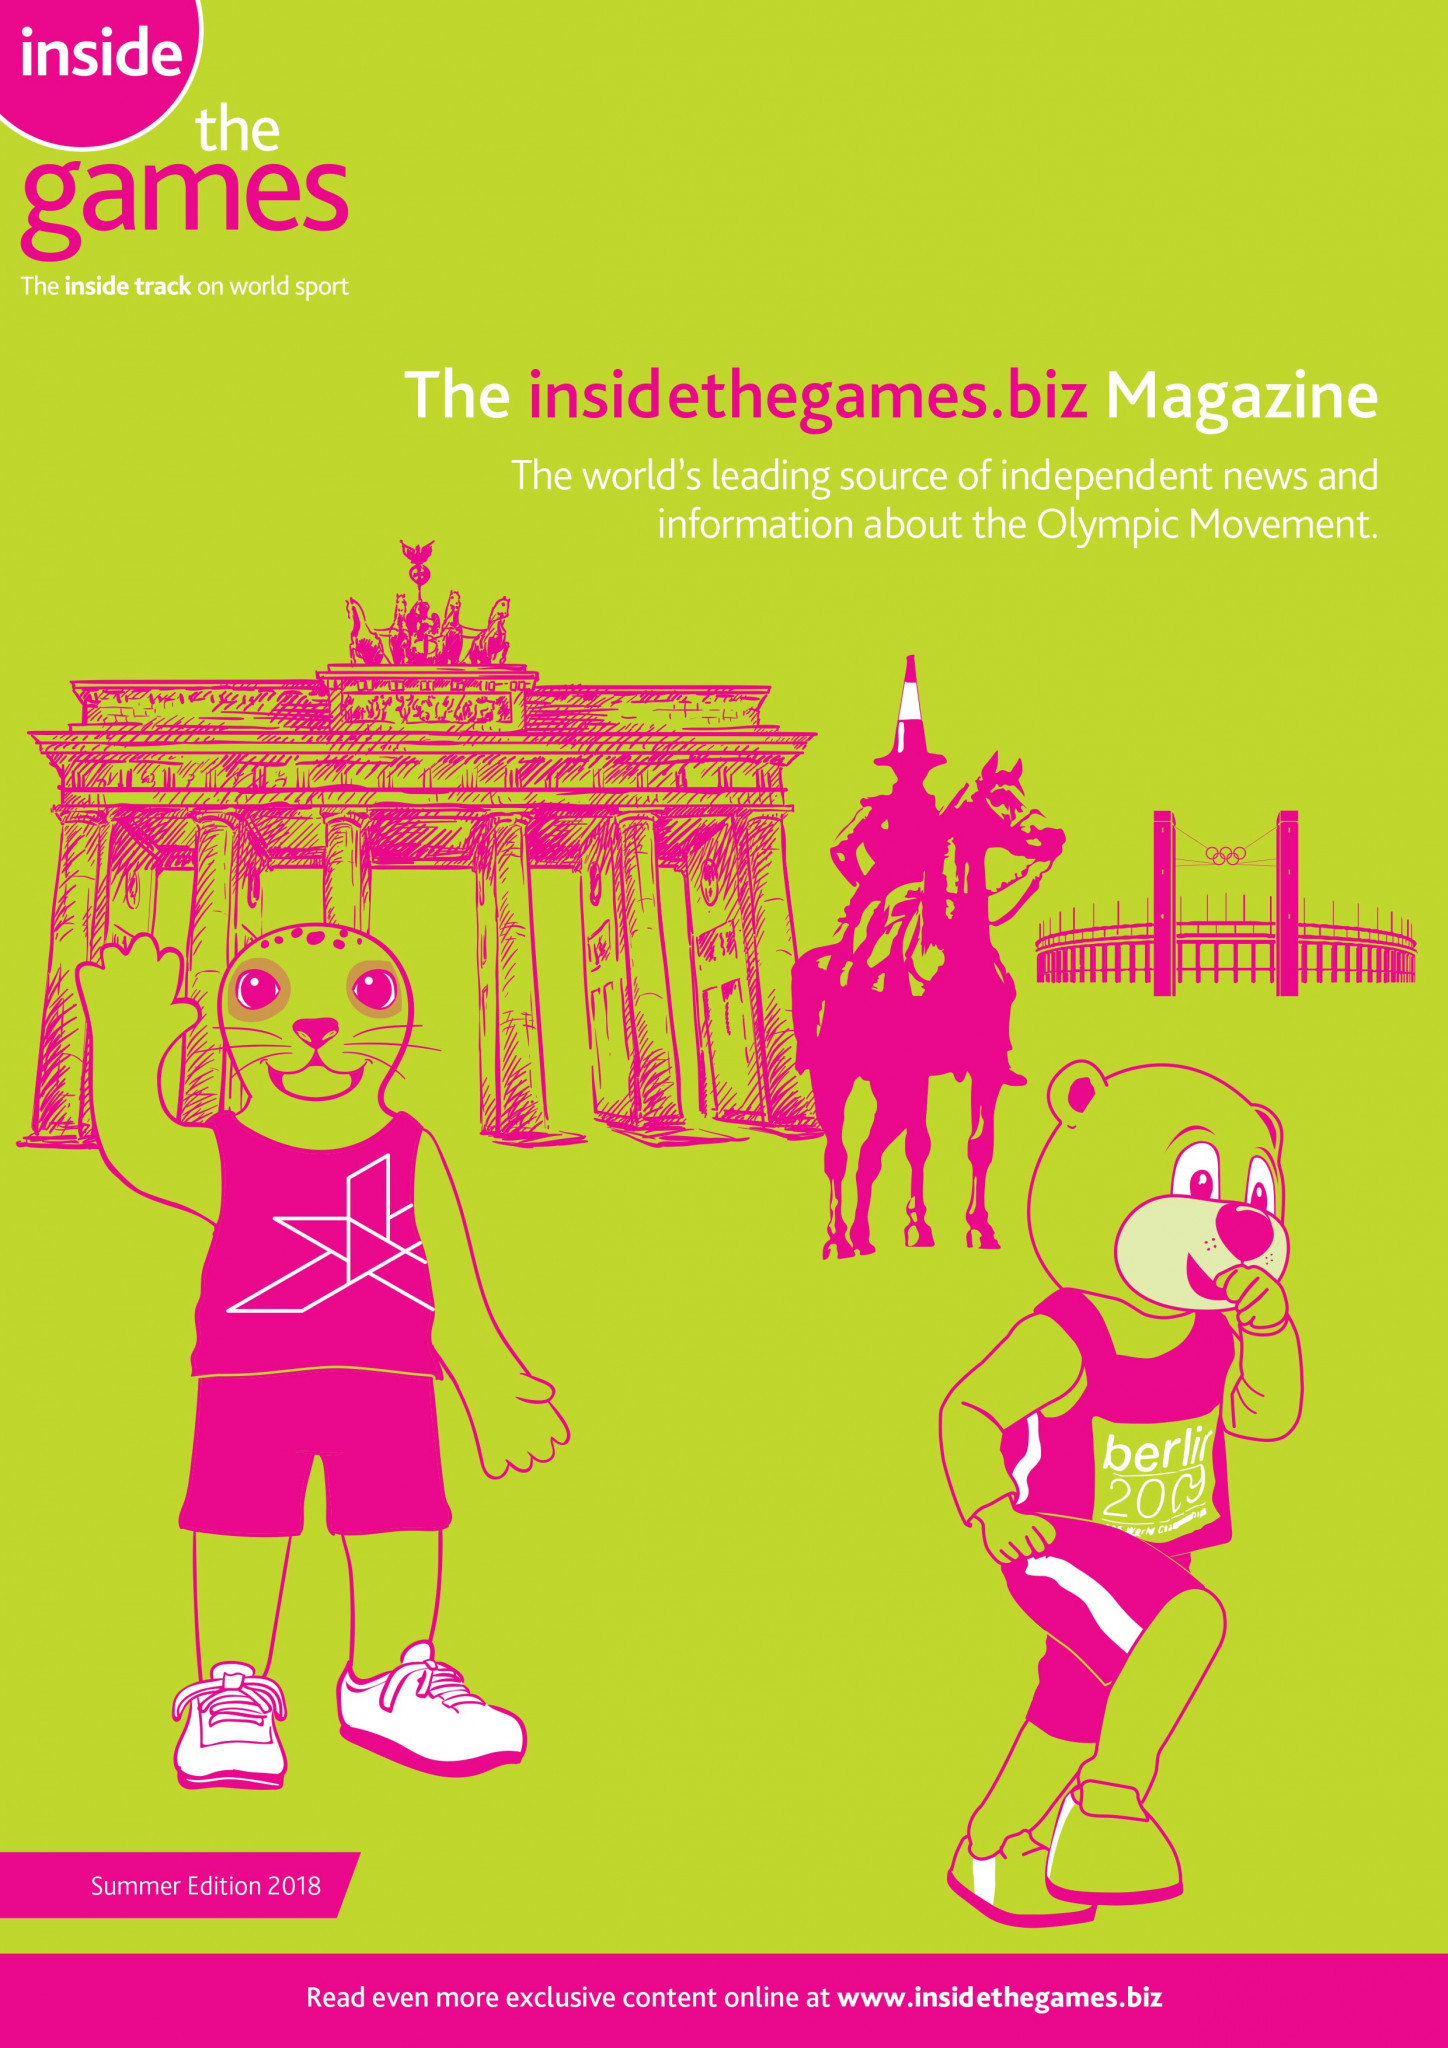 The insidethegames.biz Magazine Summer Edition 2018